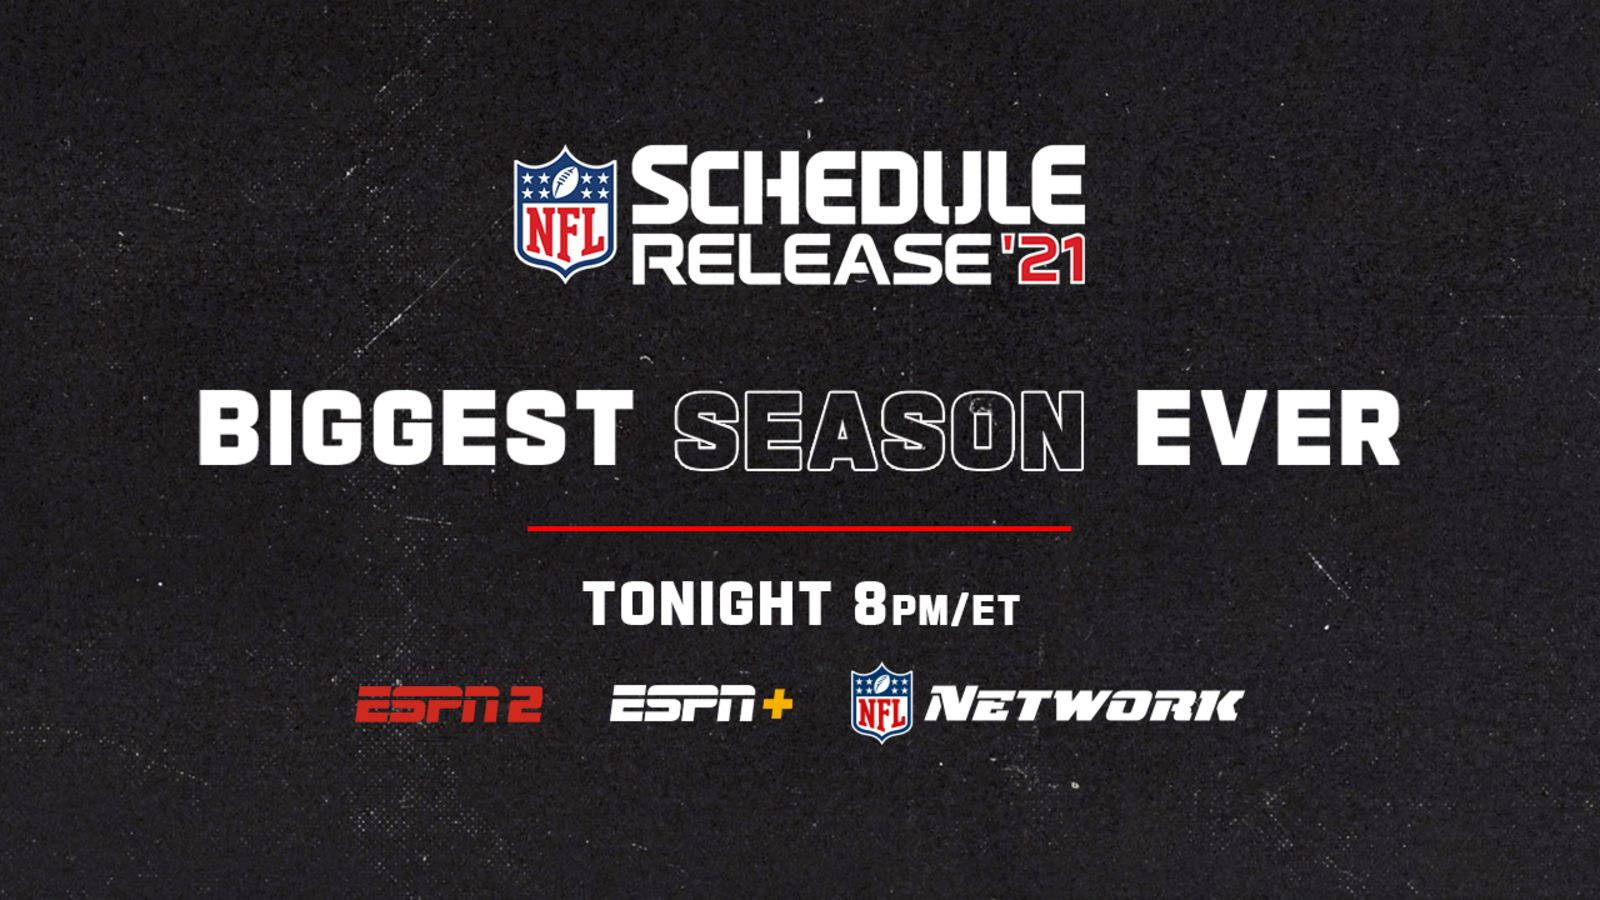 NFL Schedule 2021: Monday Night Football kicks off with Ravens v. Raiders matchup | Full announcement on ESPN2, EPSN+